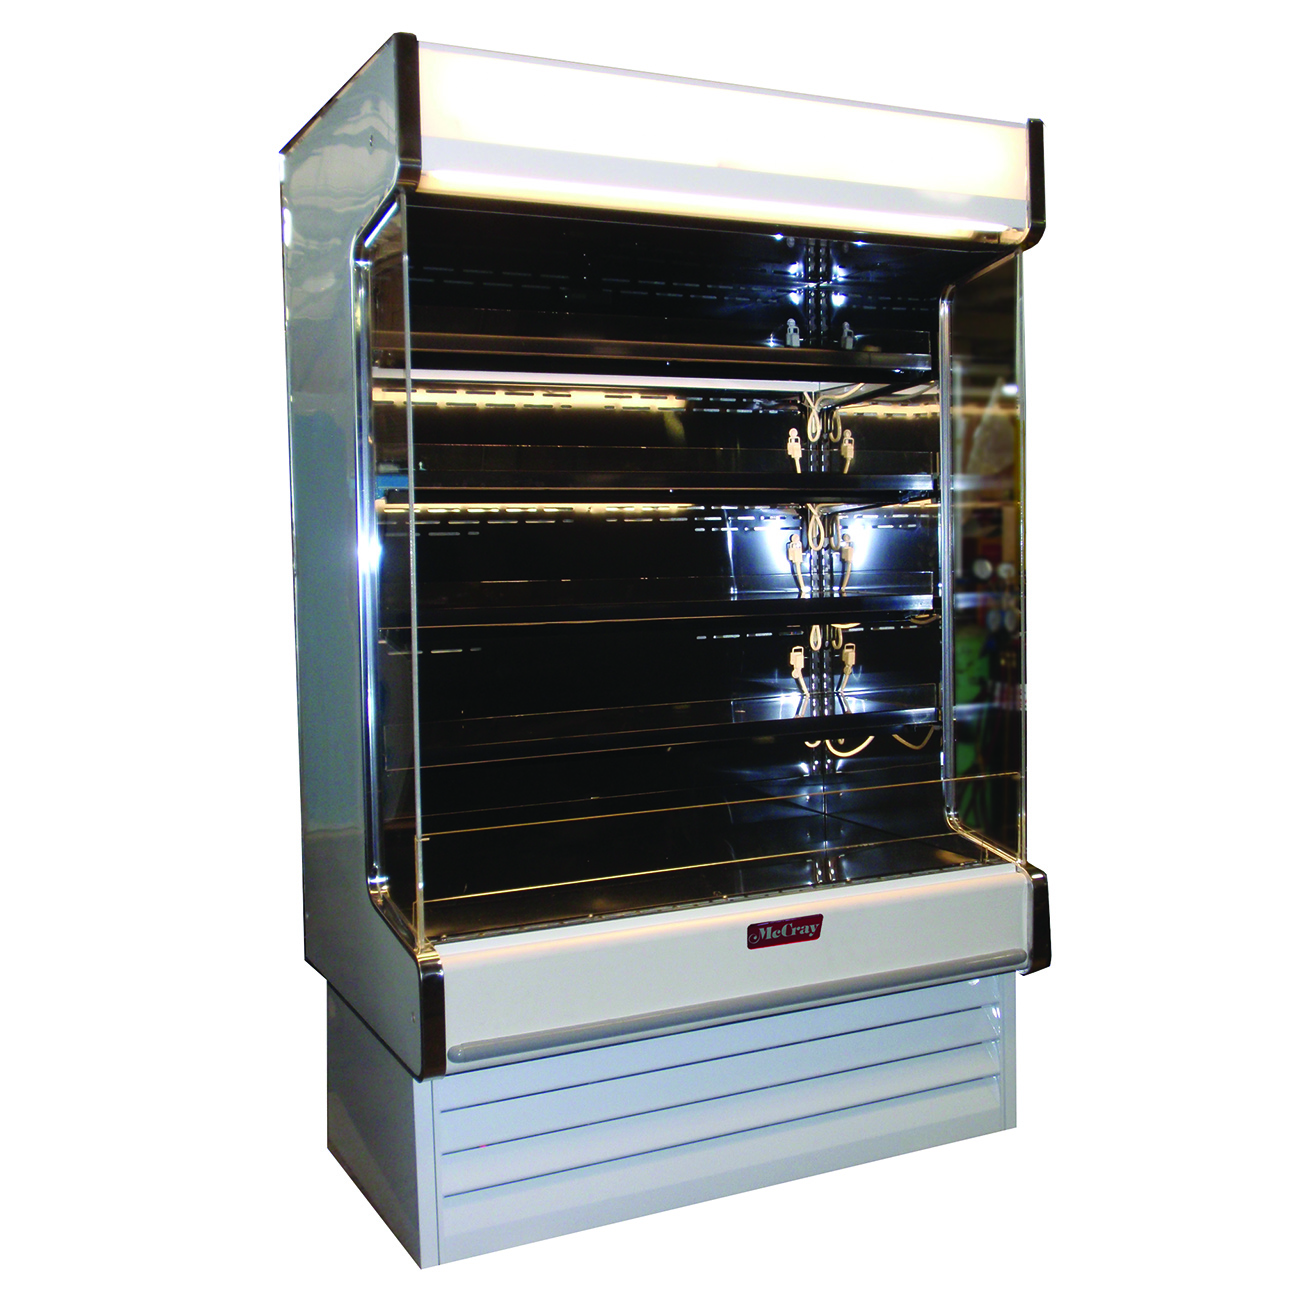 Howard-McCray SC-OD35E-5-S-LED-LC merchandiser, open refrigerated display